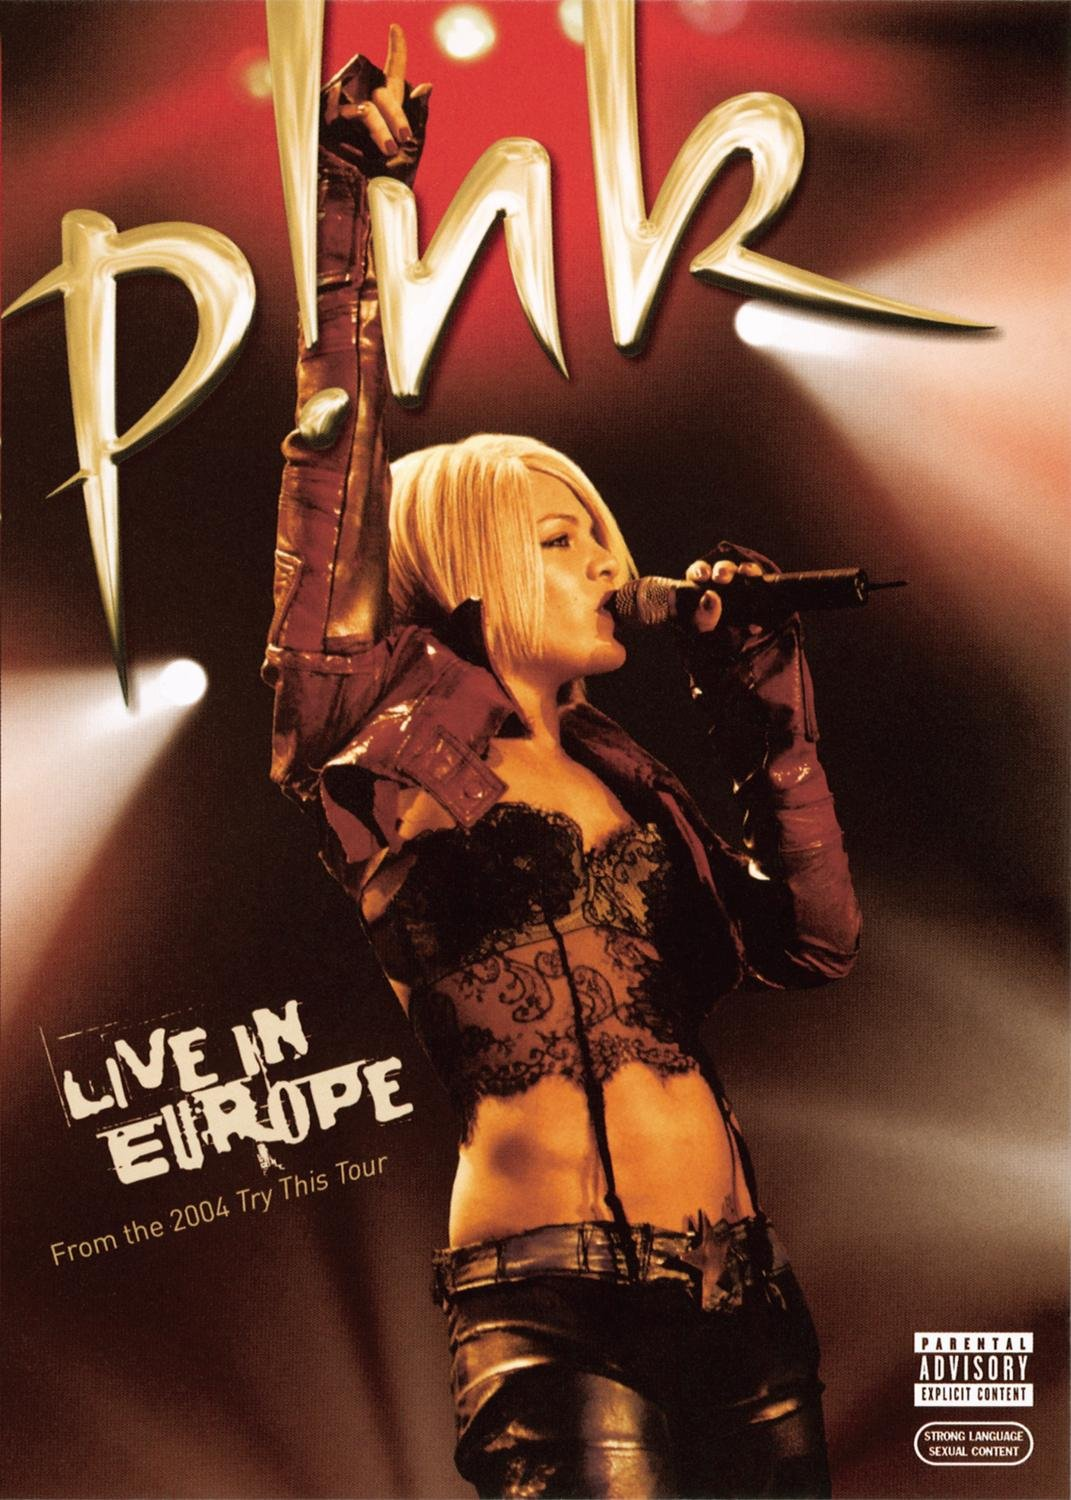 Pink: Live in Europe (Explicit) by Sony